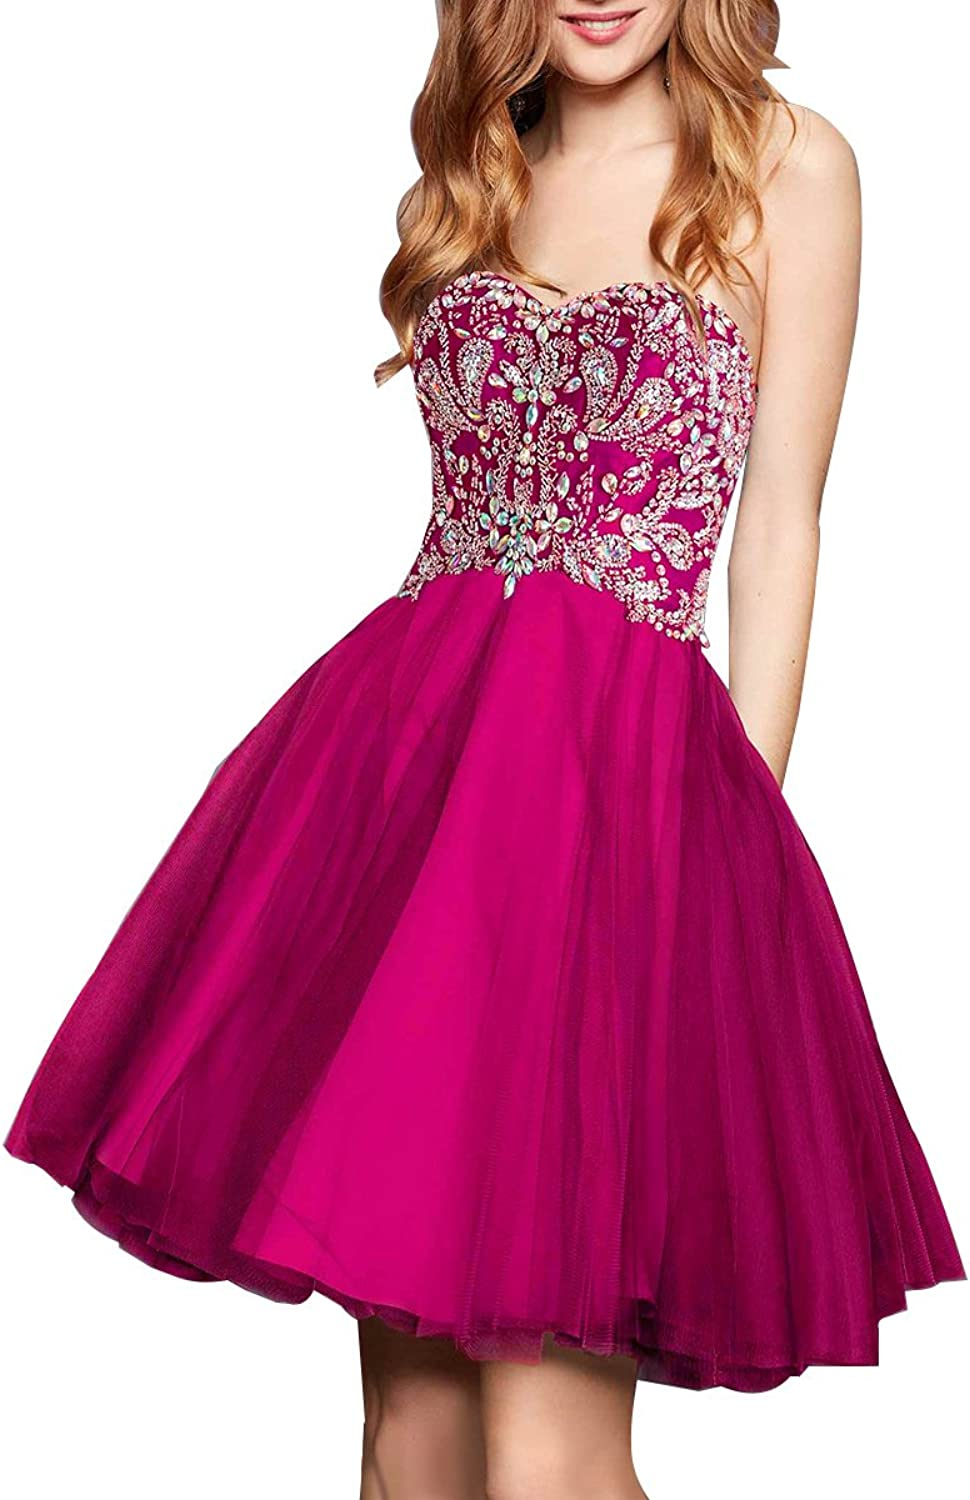 Beaded Homecoming Gown Sweethart Tulle Short Aline Formal Prom Prom Evening Dresses